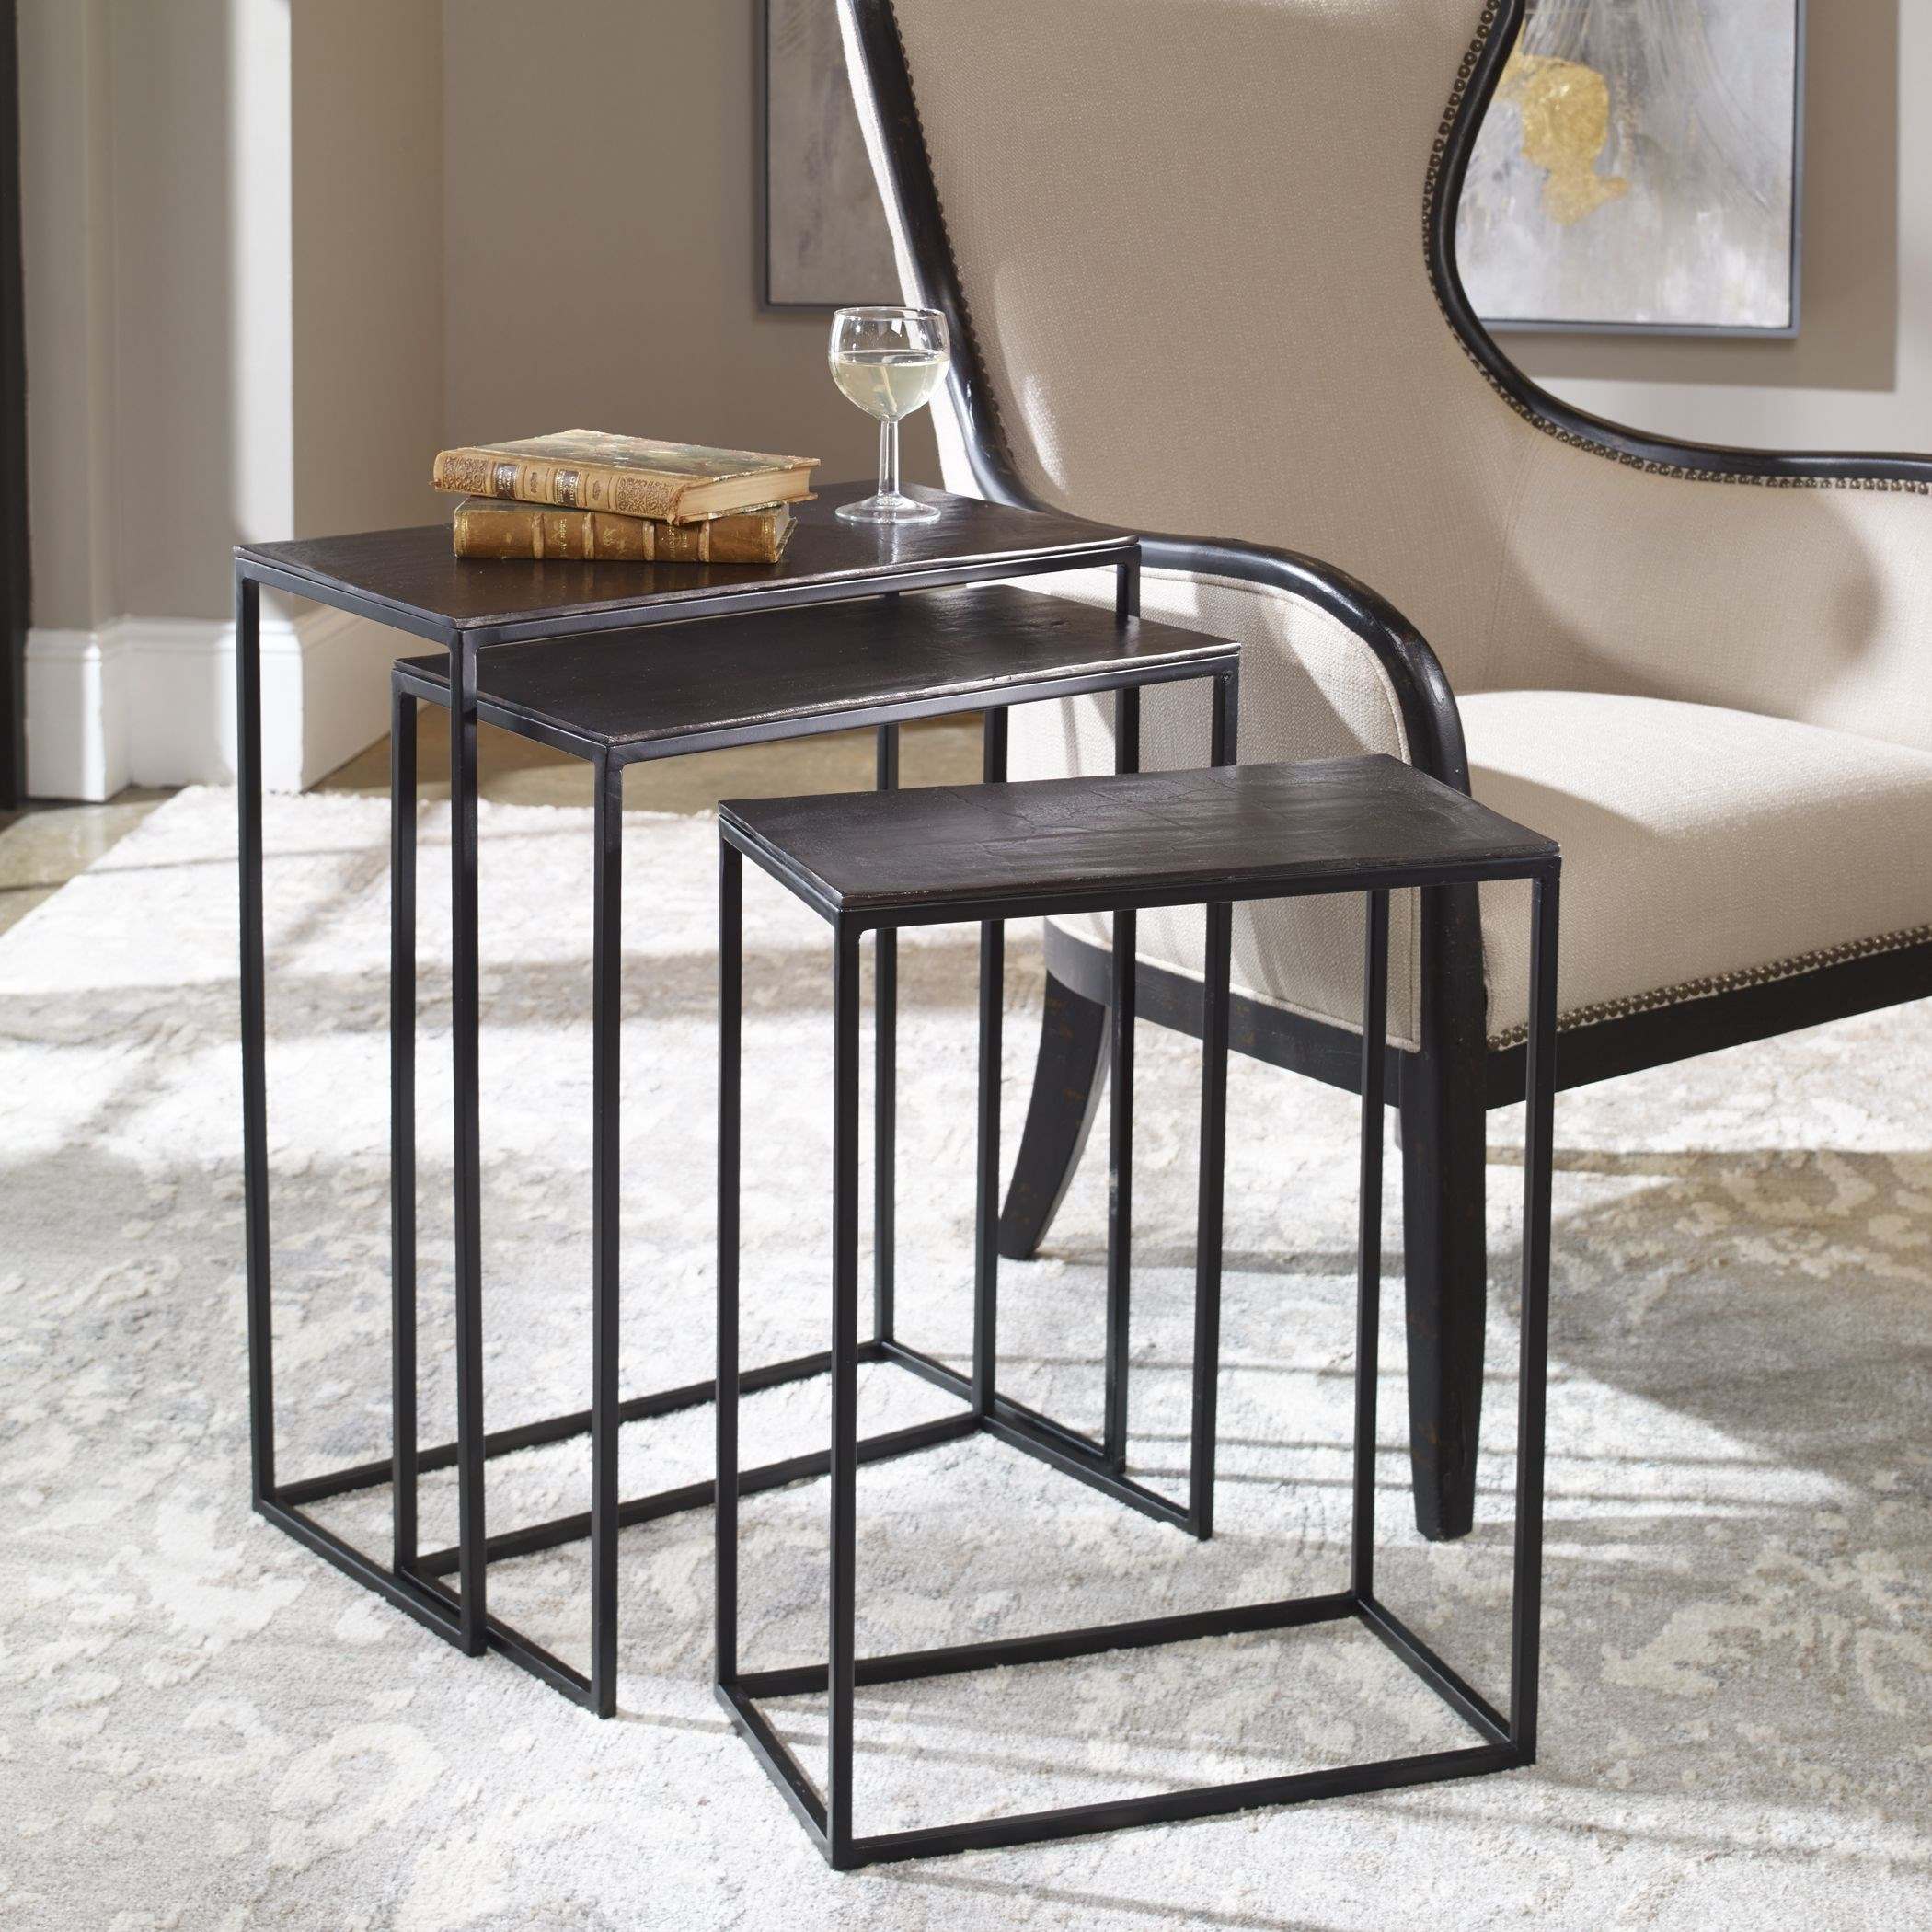 Accent Furniture - Occasional Tables Coreene Iron Nesting Tables S/3 by Uttermost at Dream Home Interiors